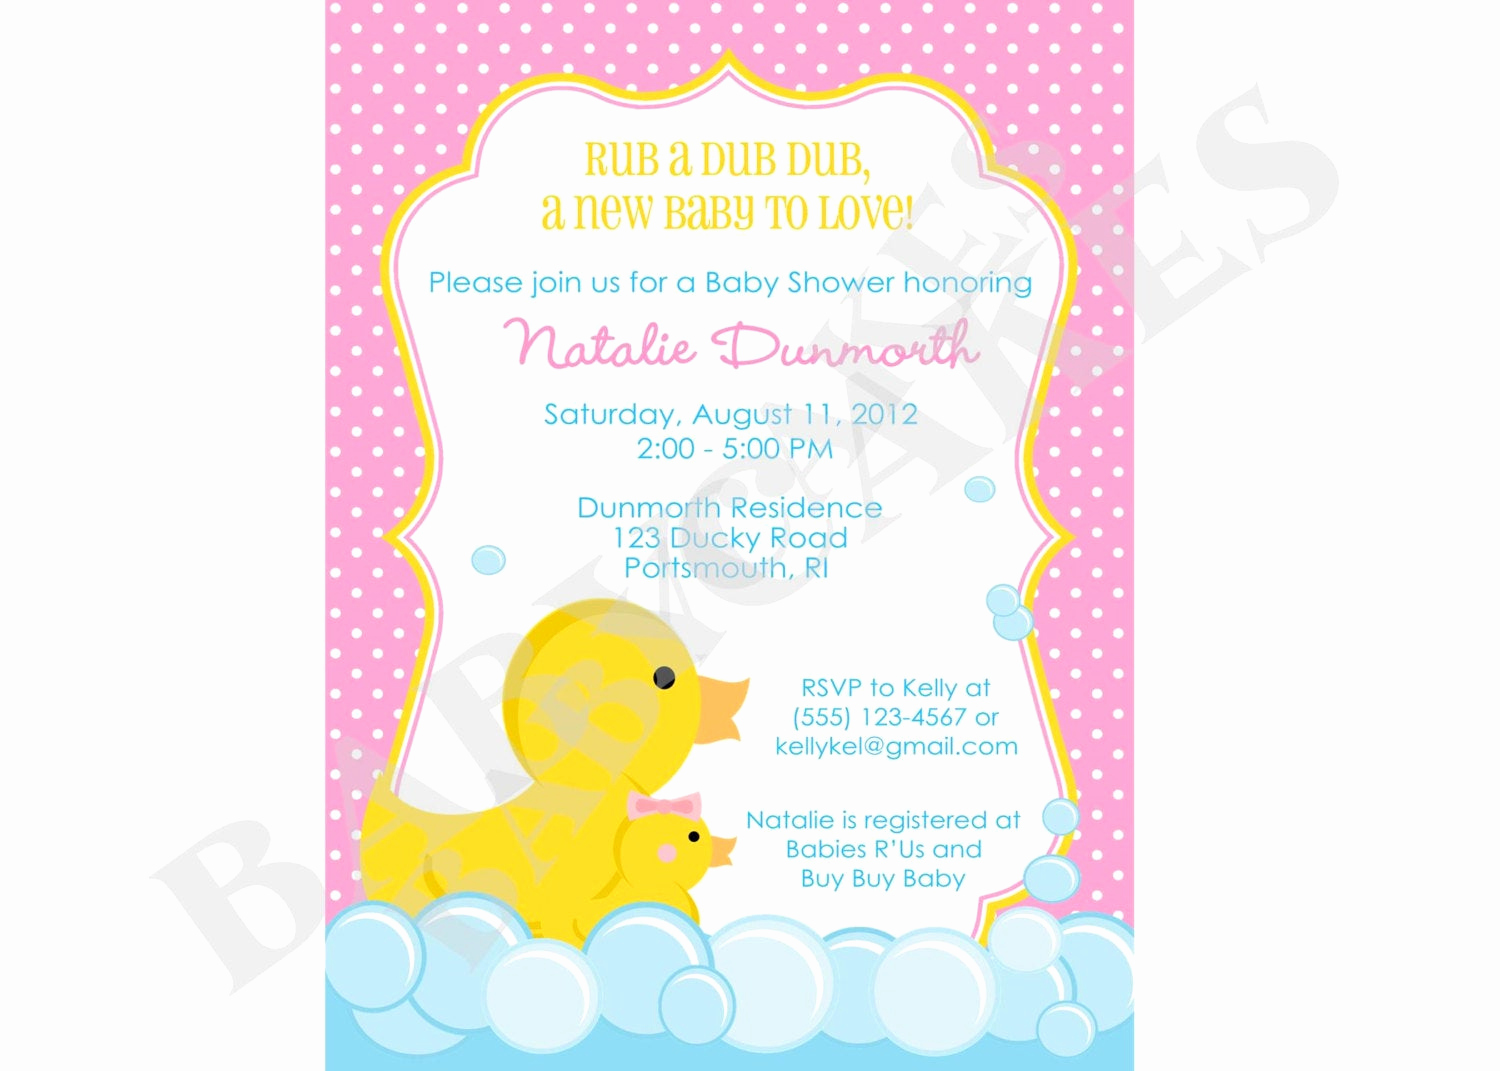 Rubber Ducky Baby Shower Invitation Best Of Rubber Ducky Baby Shower Invitation Rubber Duckie Girl Pink